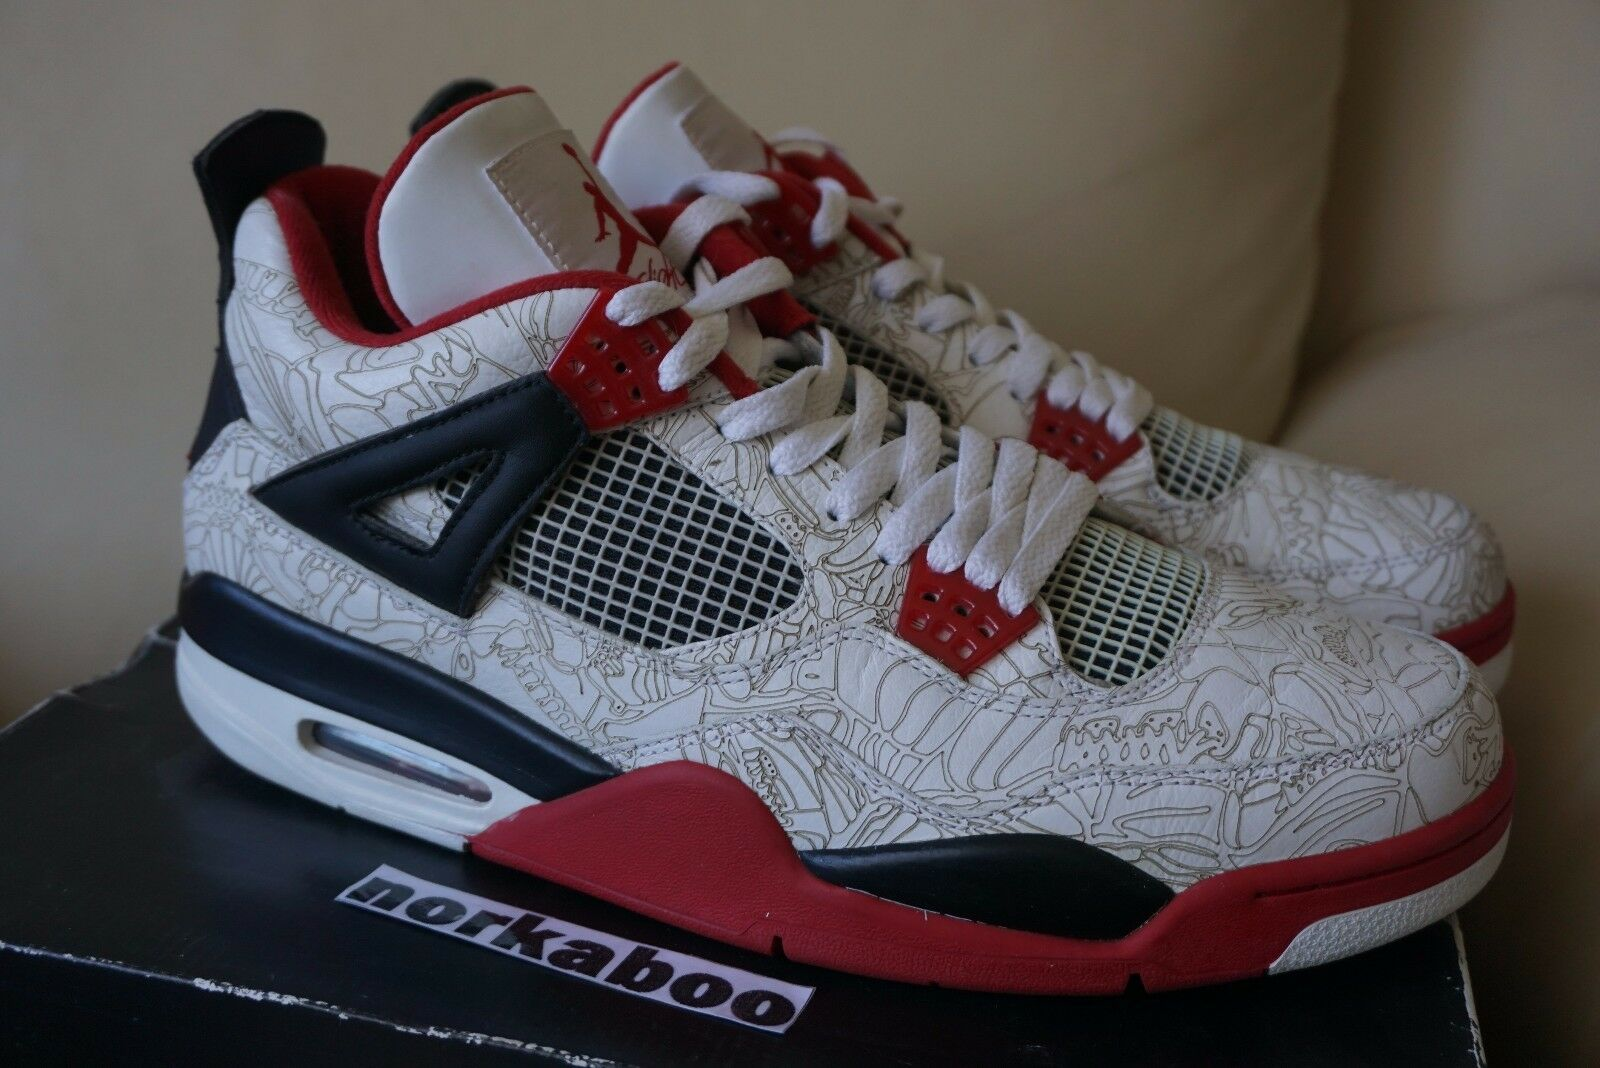 Air Jordan IV 4 Retro Weiß Laser 308497-161 fire rot doernbecher db 12